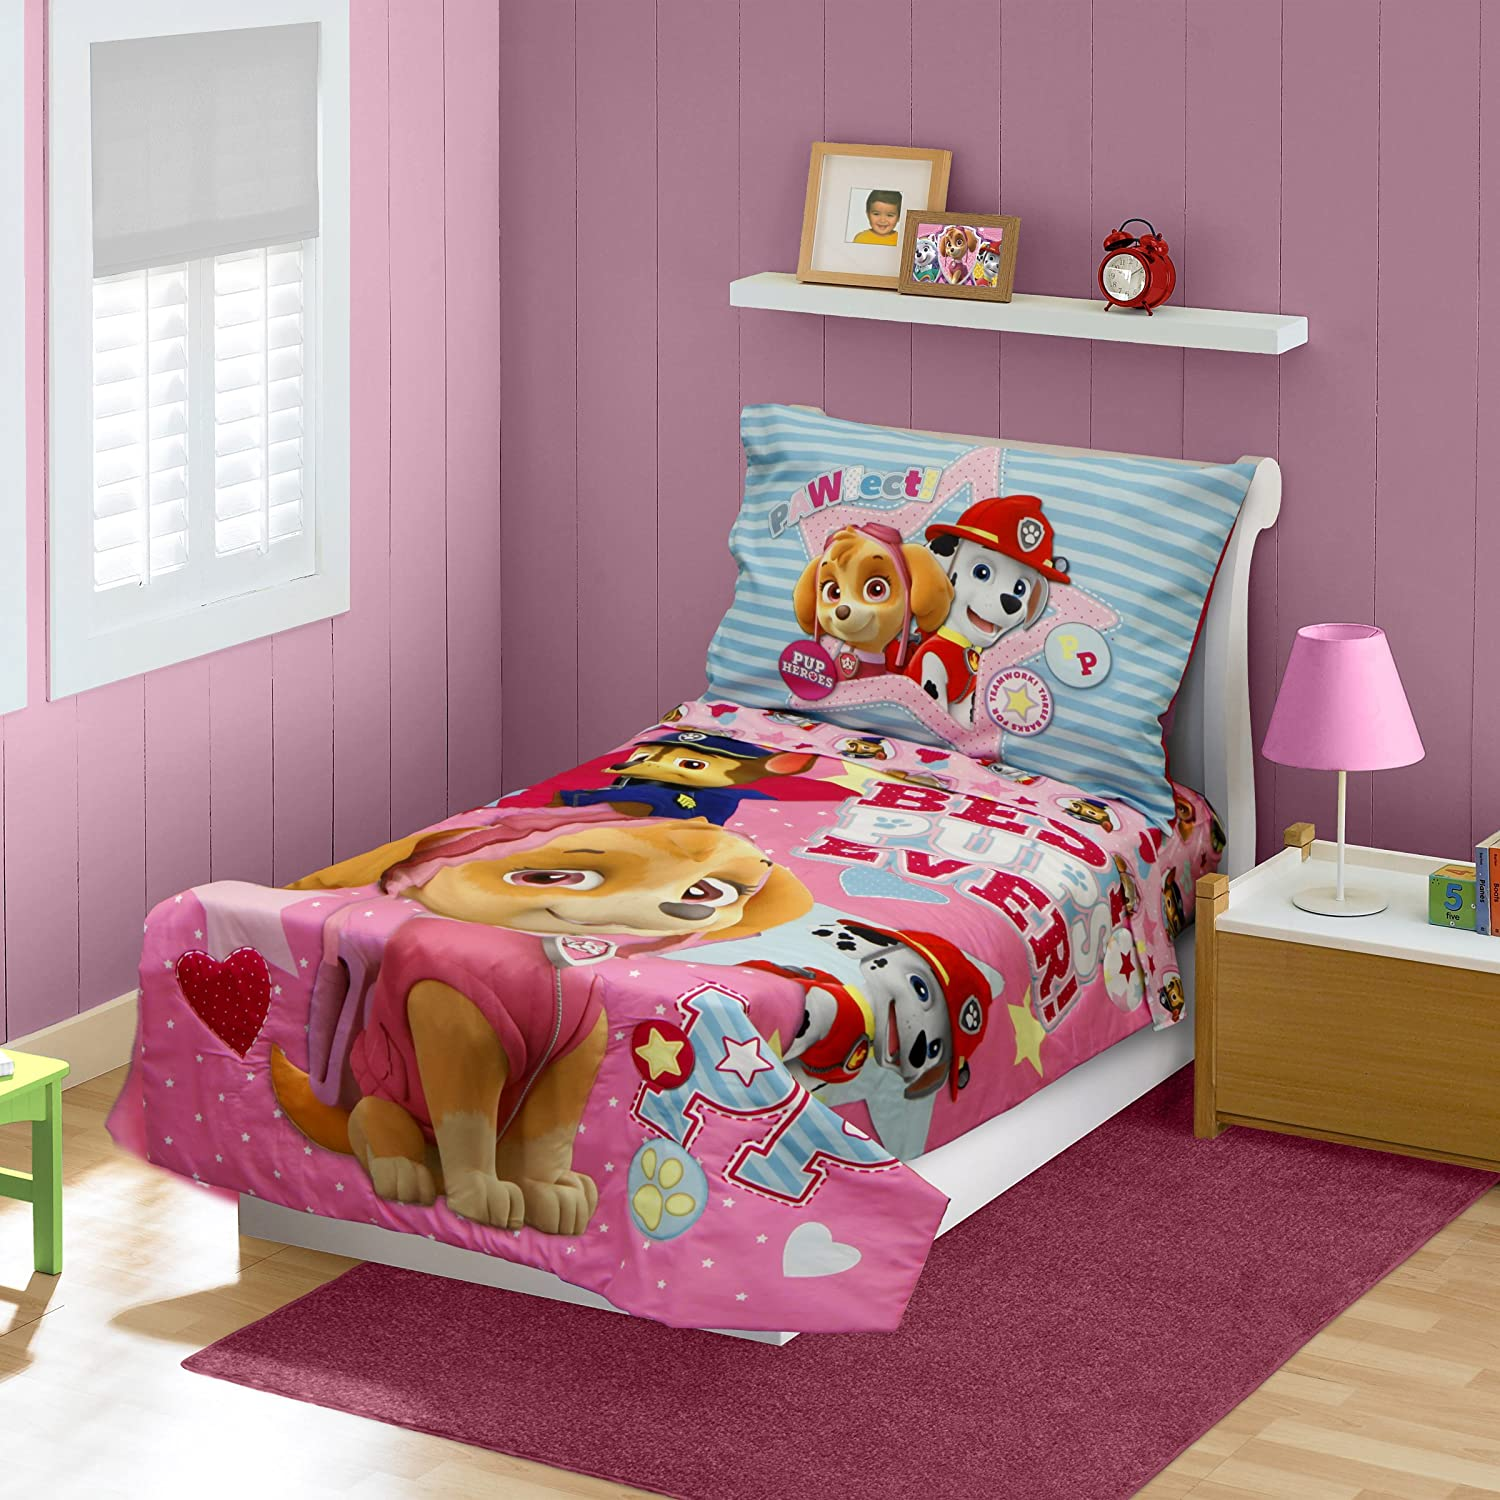 Toddler Bedding Sets Sale Ease Bedding With Style